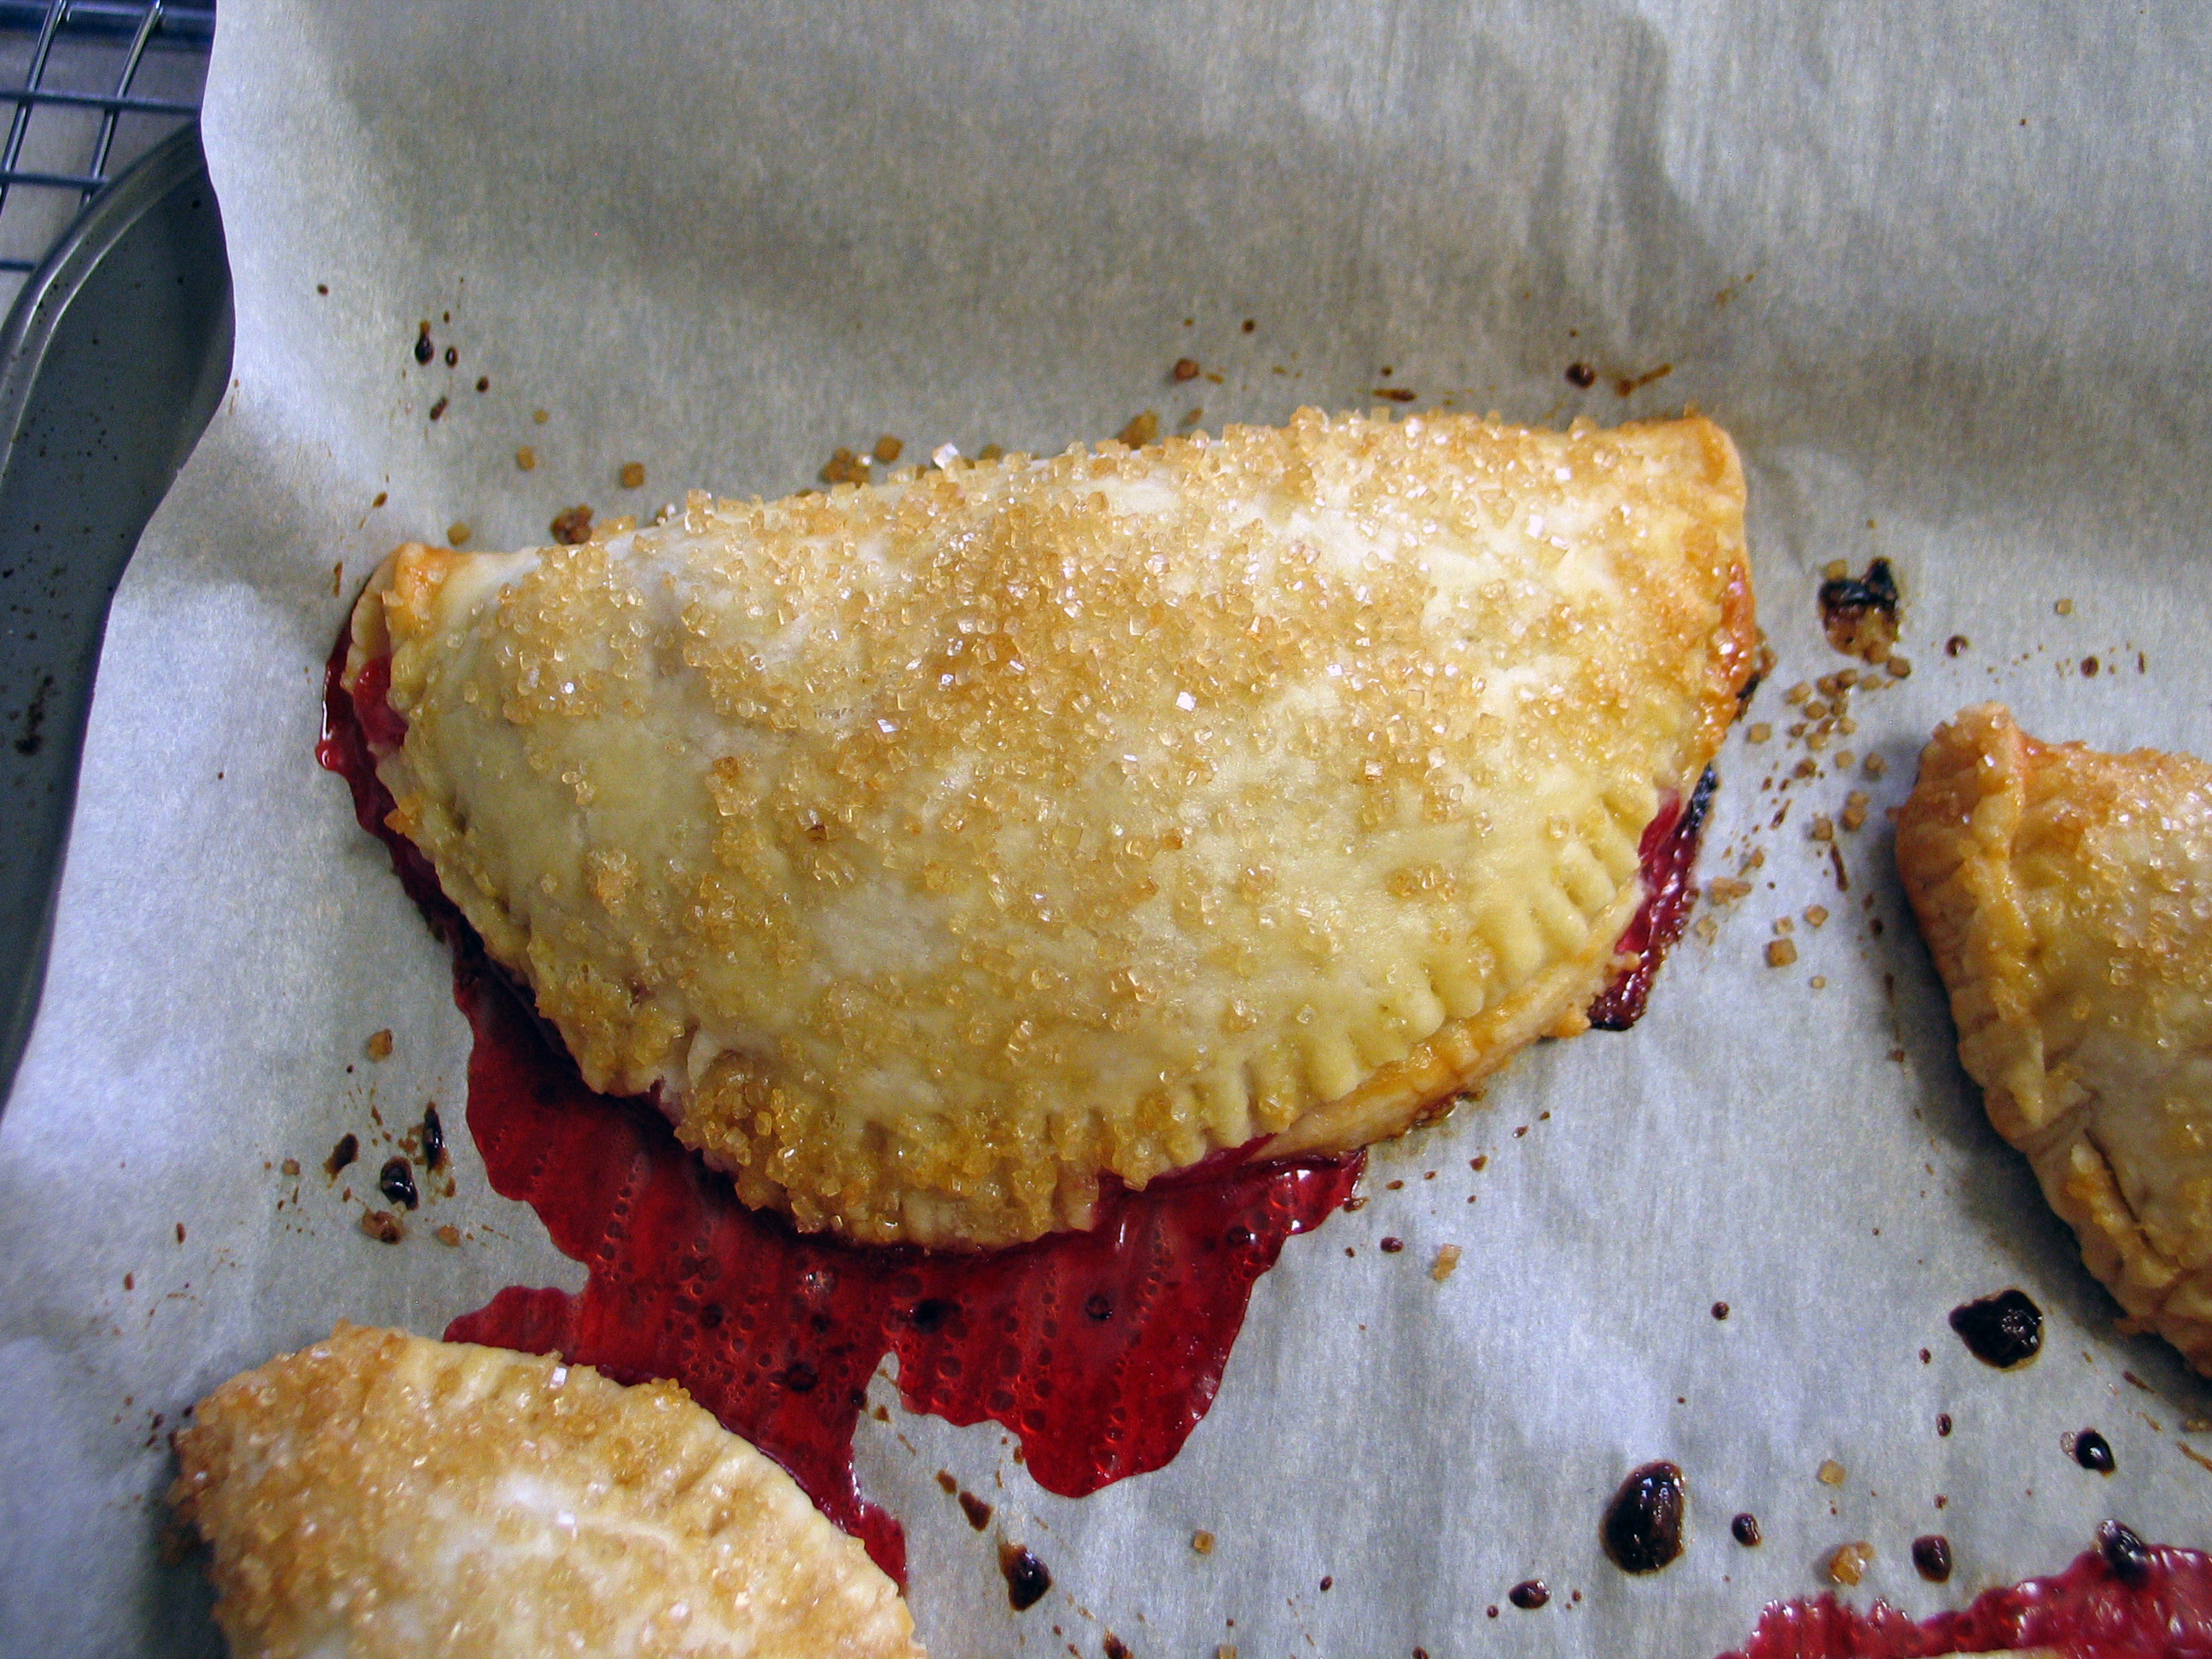 Strawberry, Rhubarb and Ginger Hand Pies